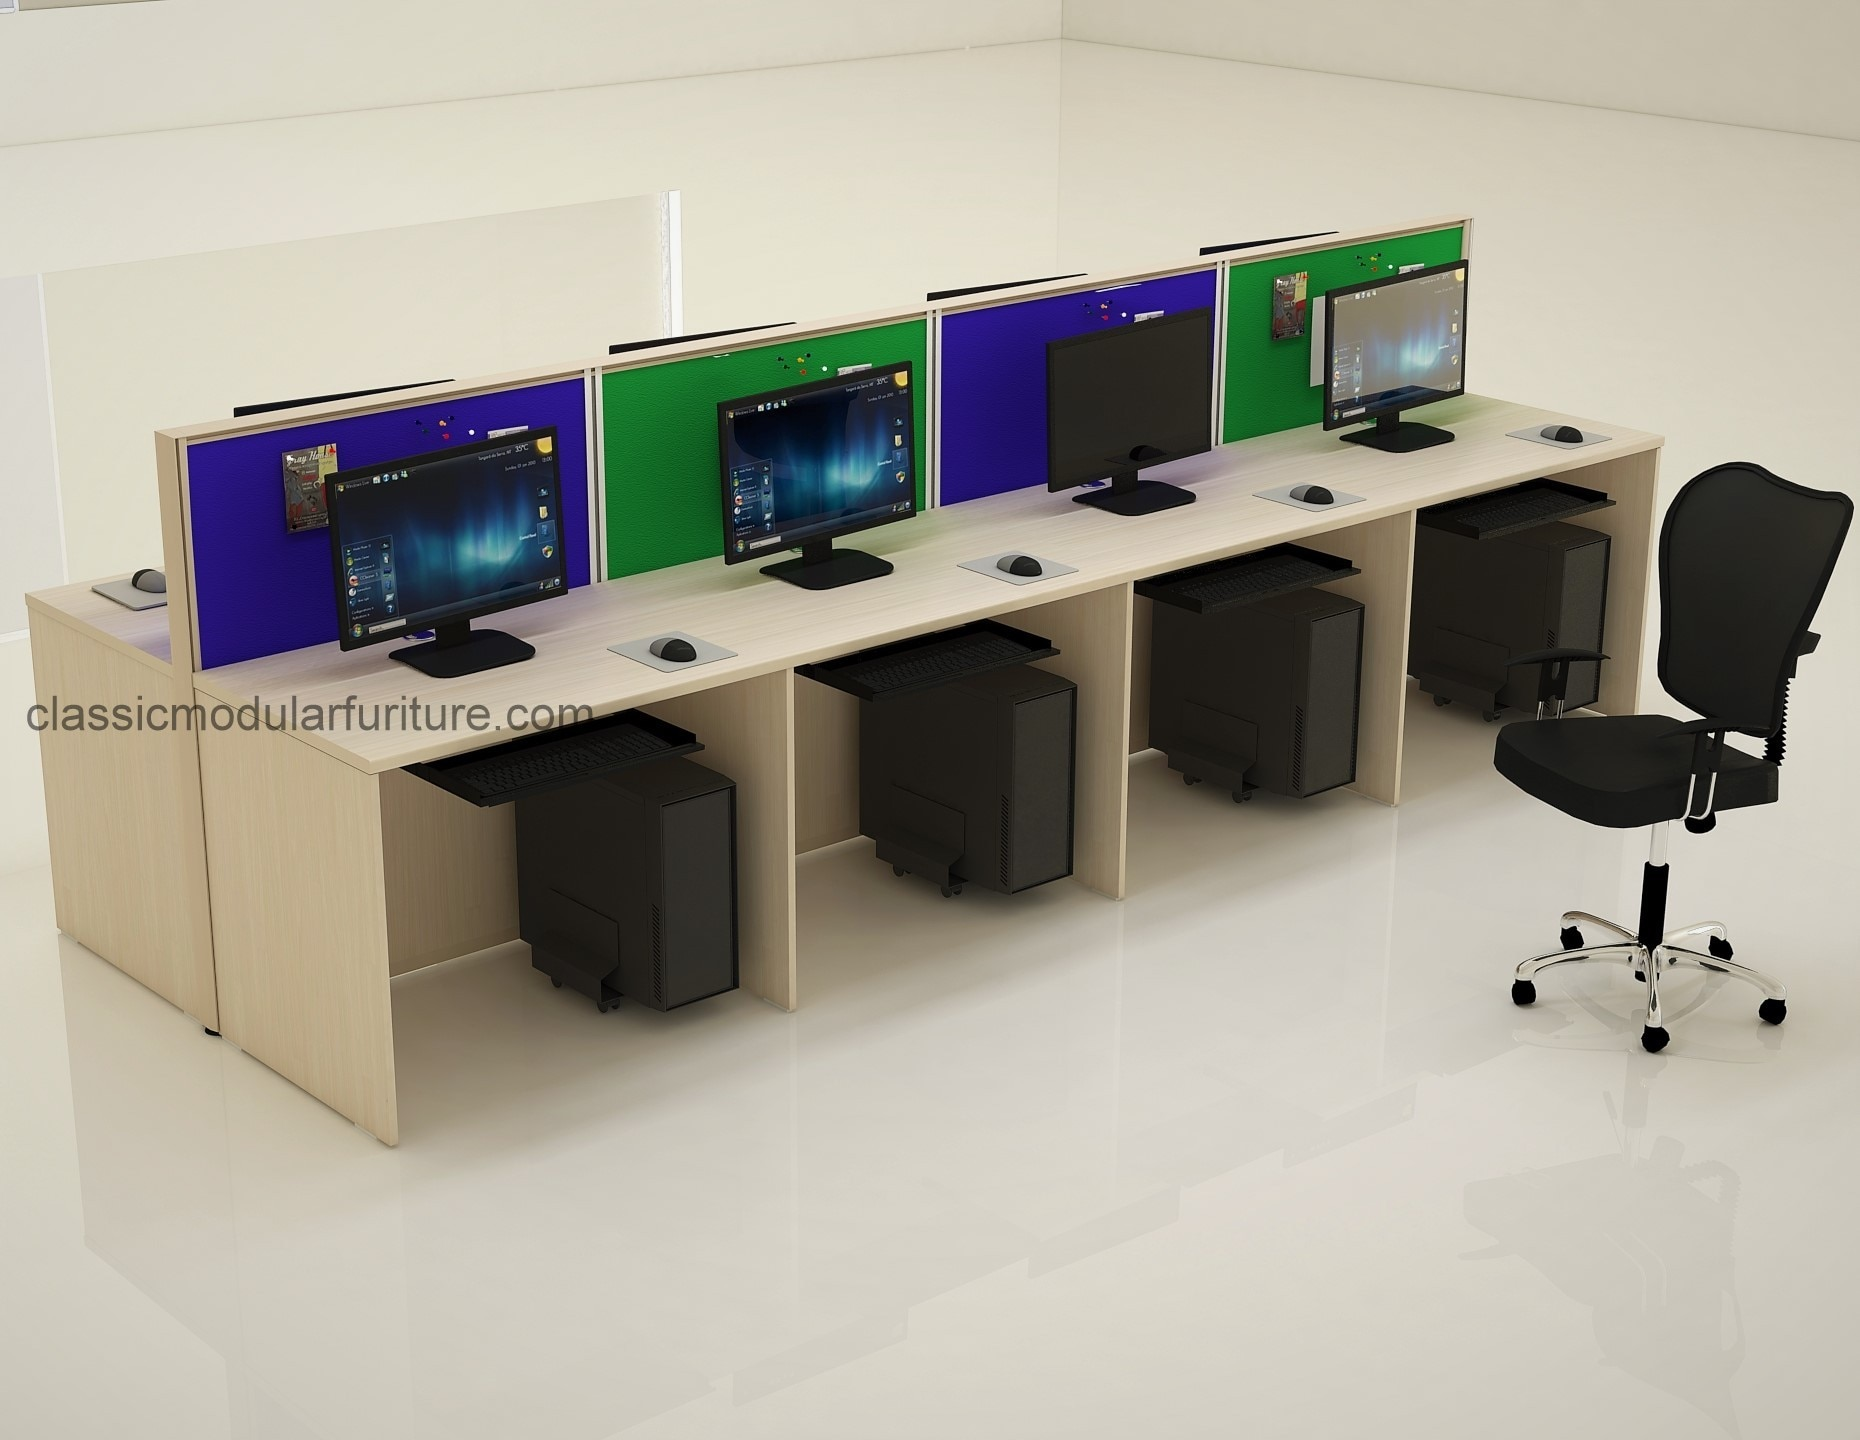 Tile based modular workstation consisting of 60mm aluminum profile partitions with softboard with high quality prelaminated particle board desk top and sides suitable for offices and call centres.